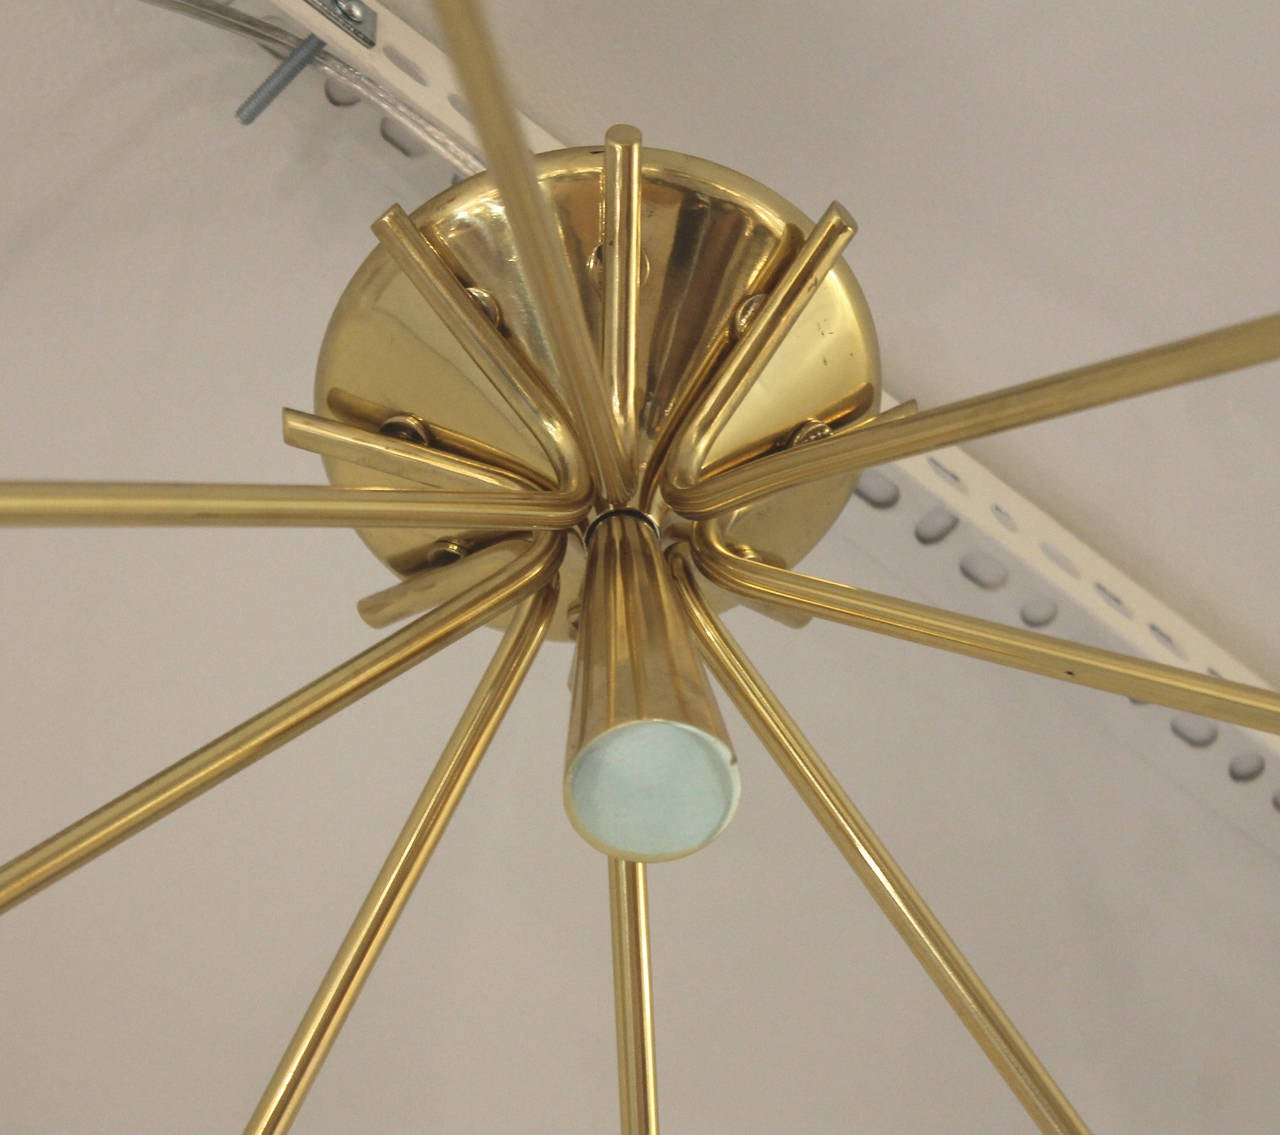 Pair of Brass Semi-Sputnik Chandeliers by Lumi, Italy, 1960s In Excellent Condition For Sale In New York, NY